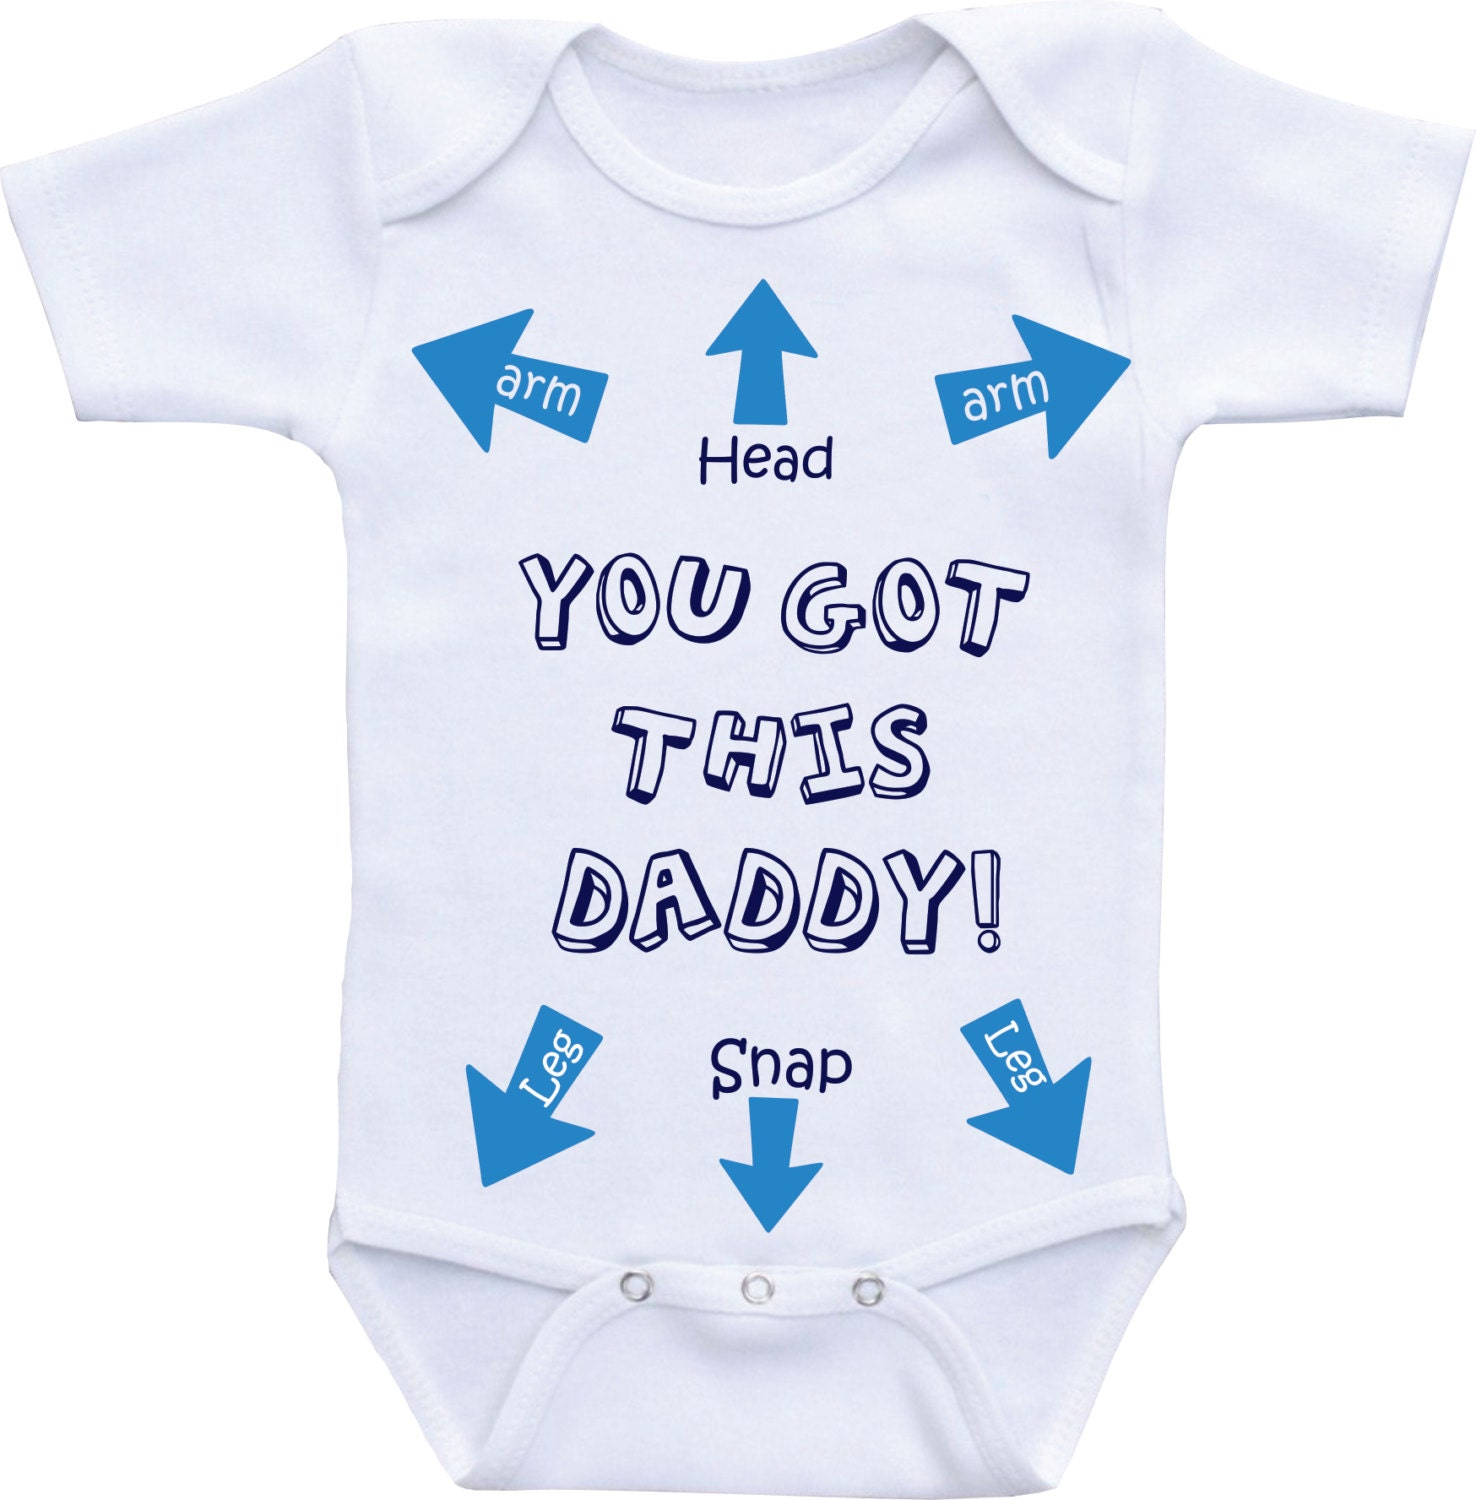 Baby bodysuits are a cute choice when introducing your newborn to the world. Multipacks offer several onesies in one package, so you can quickly build a wardrobe for your little bundle of joy. Try a pack of colorful, short-sleeved bodysuits with contrasting trim.